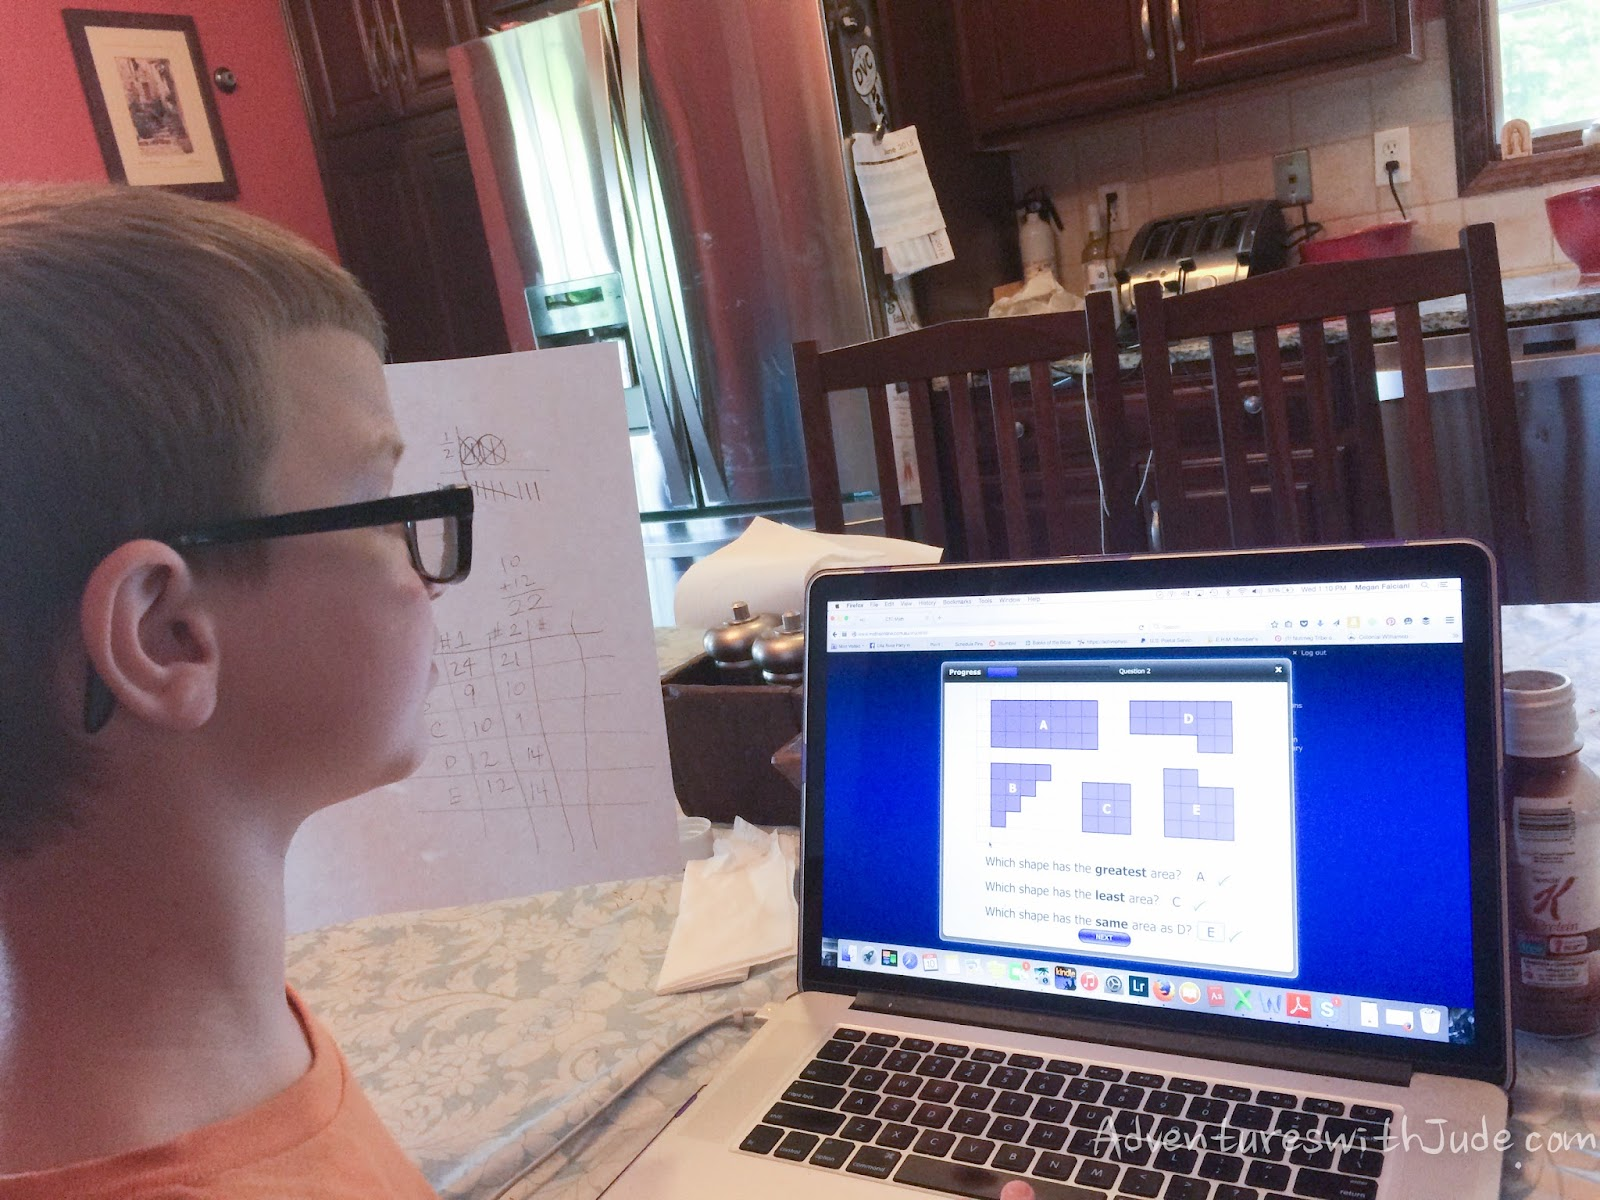 Adventures with Jude: CTC Math (A Schoolhouse Crew Review)